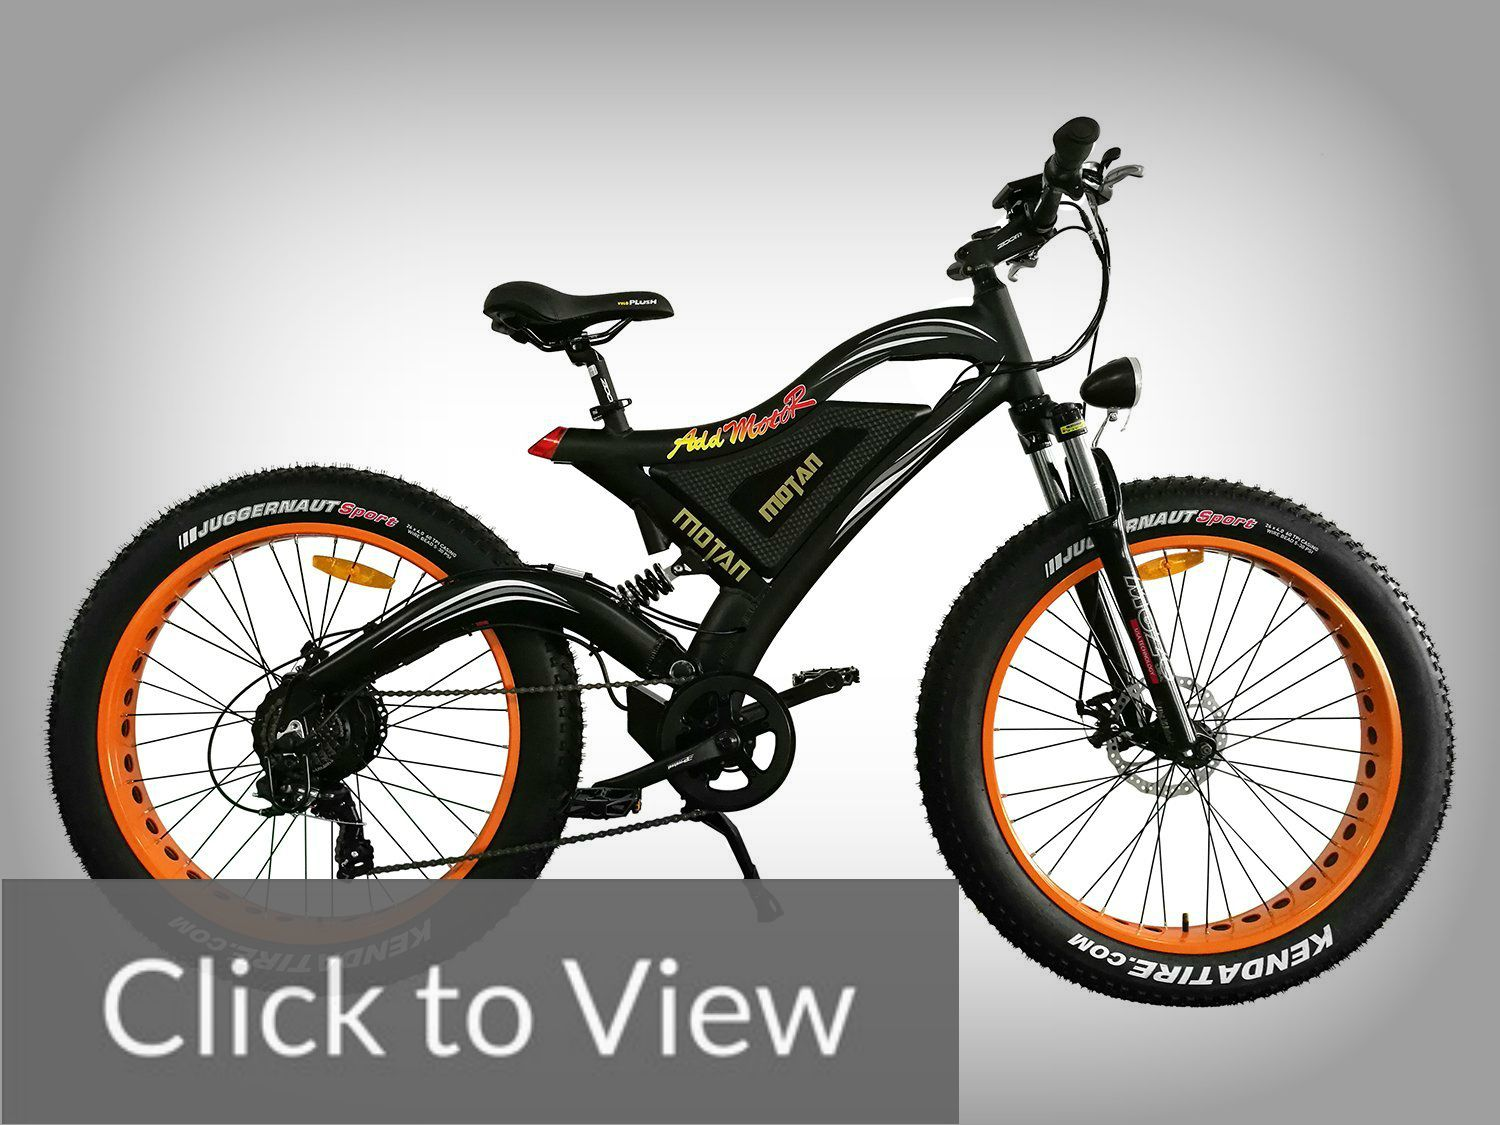 Addmotor Motan M 850 New Electric Bicycle 500w 48v Motor For Snow